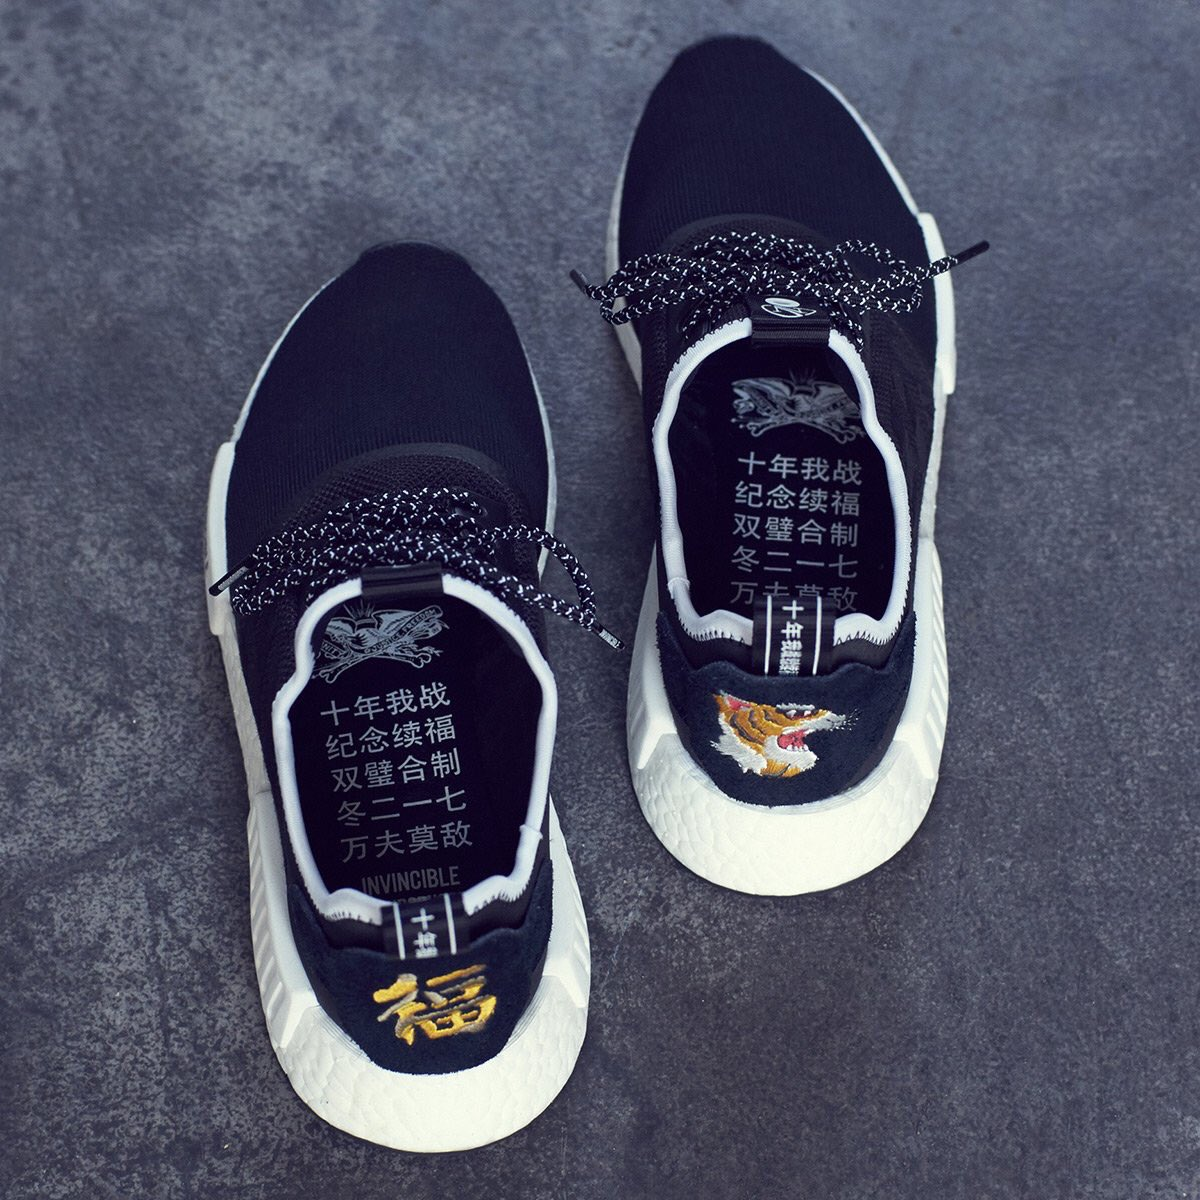 73cf406ab545d Invincible x Neighborhood x adidas NMD R1. Slots coming soon.pic.twitter .com o5ITPn5ecI